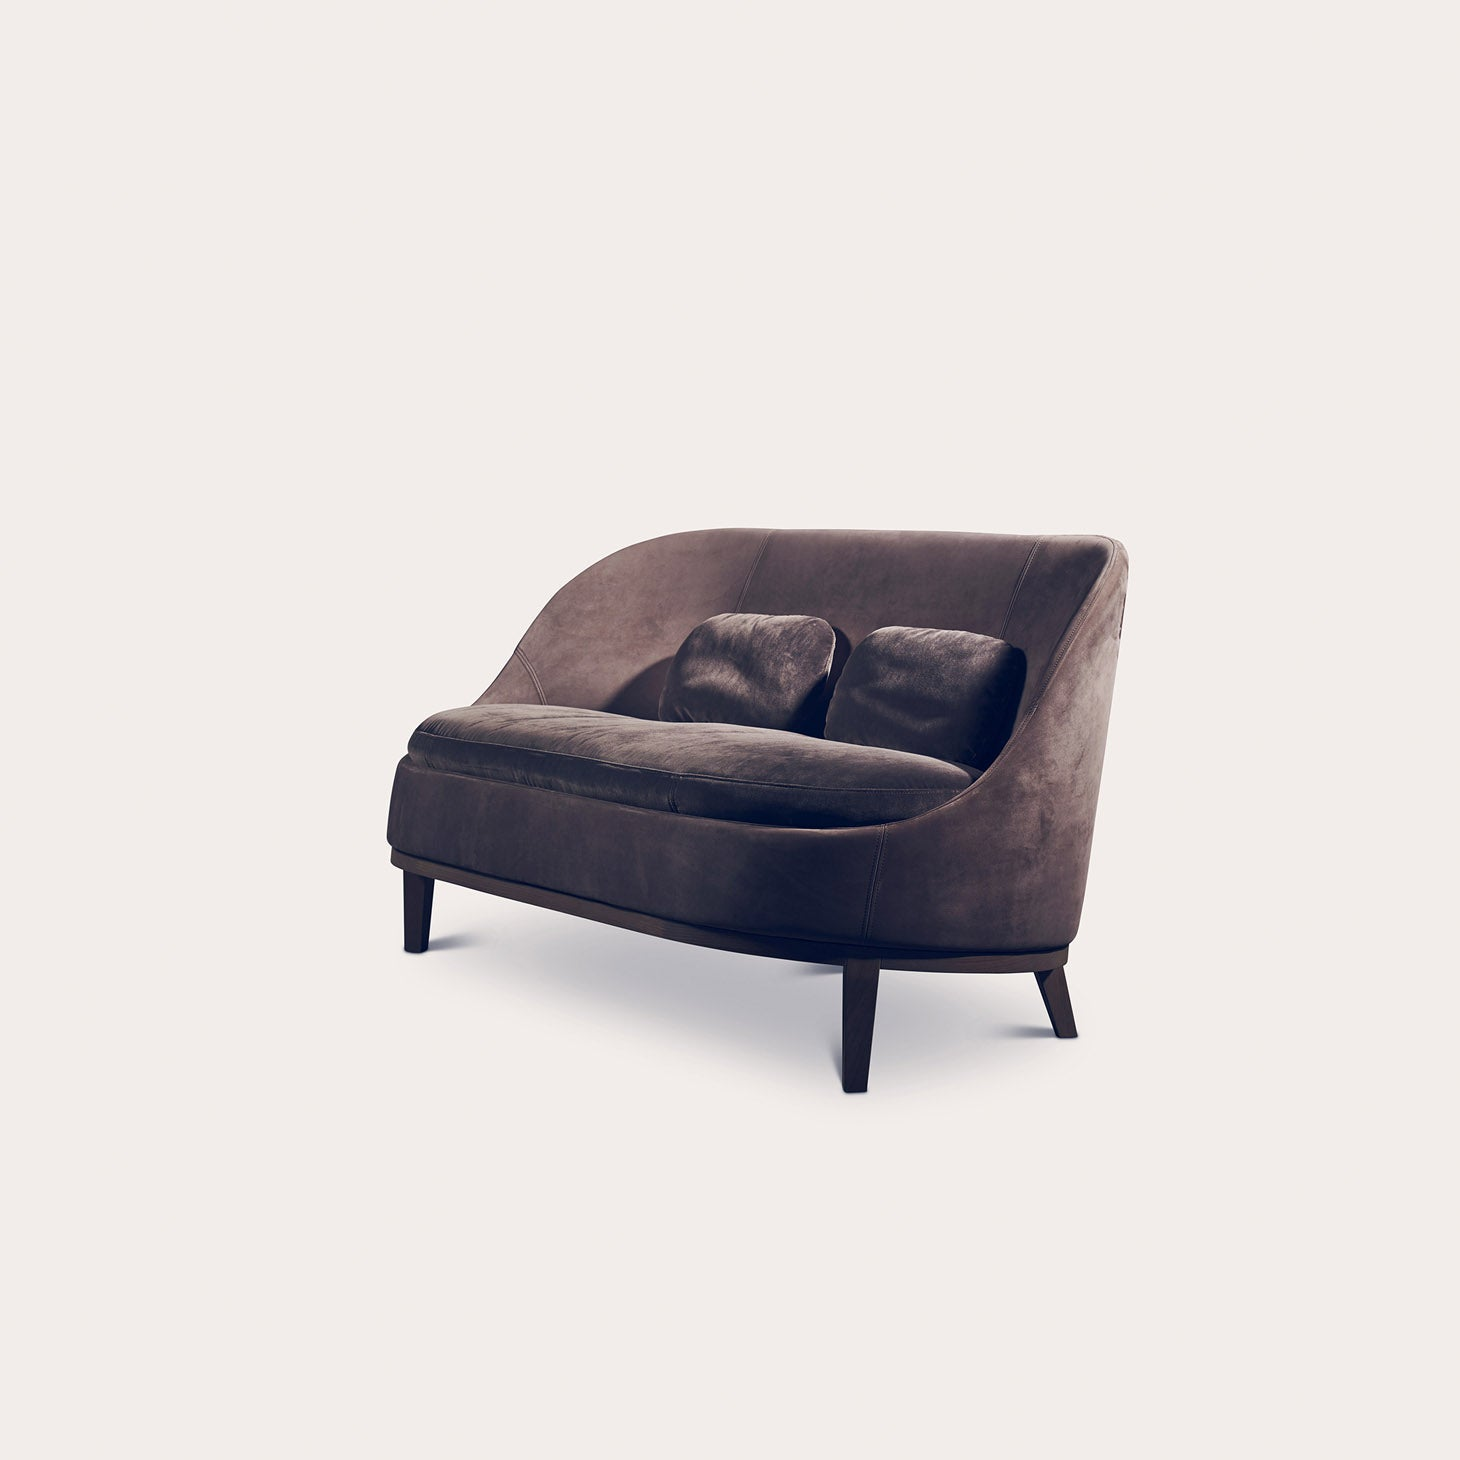 Belle Seating Piet Boon Designer Furniture Sku: 784-240-10026